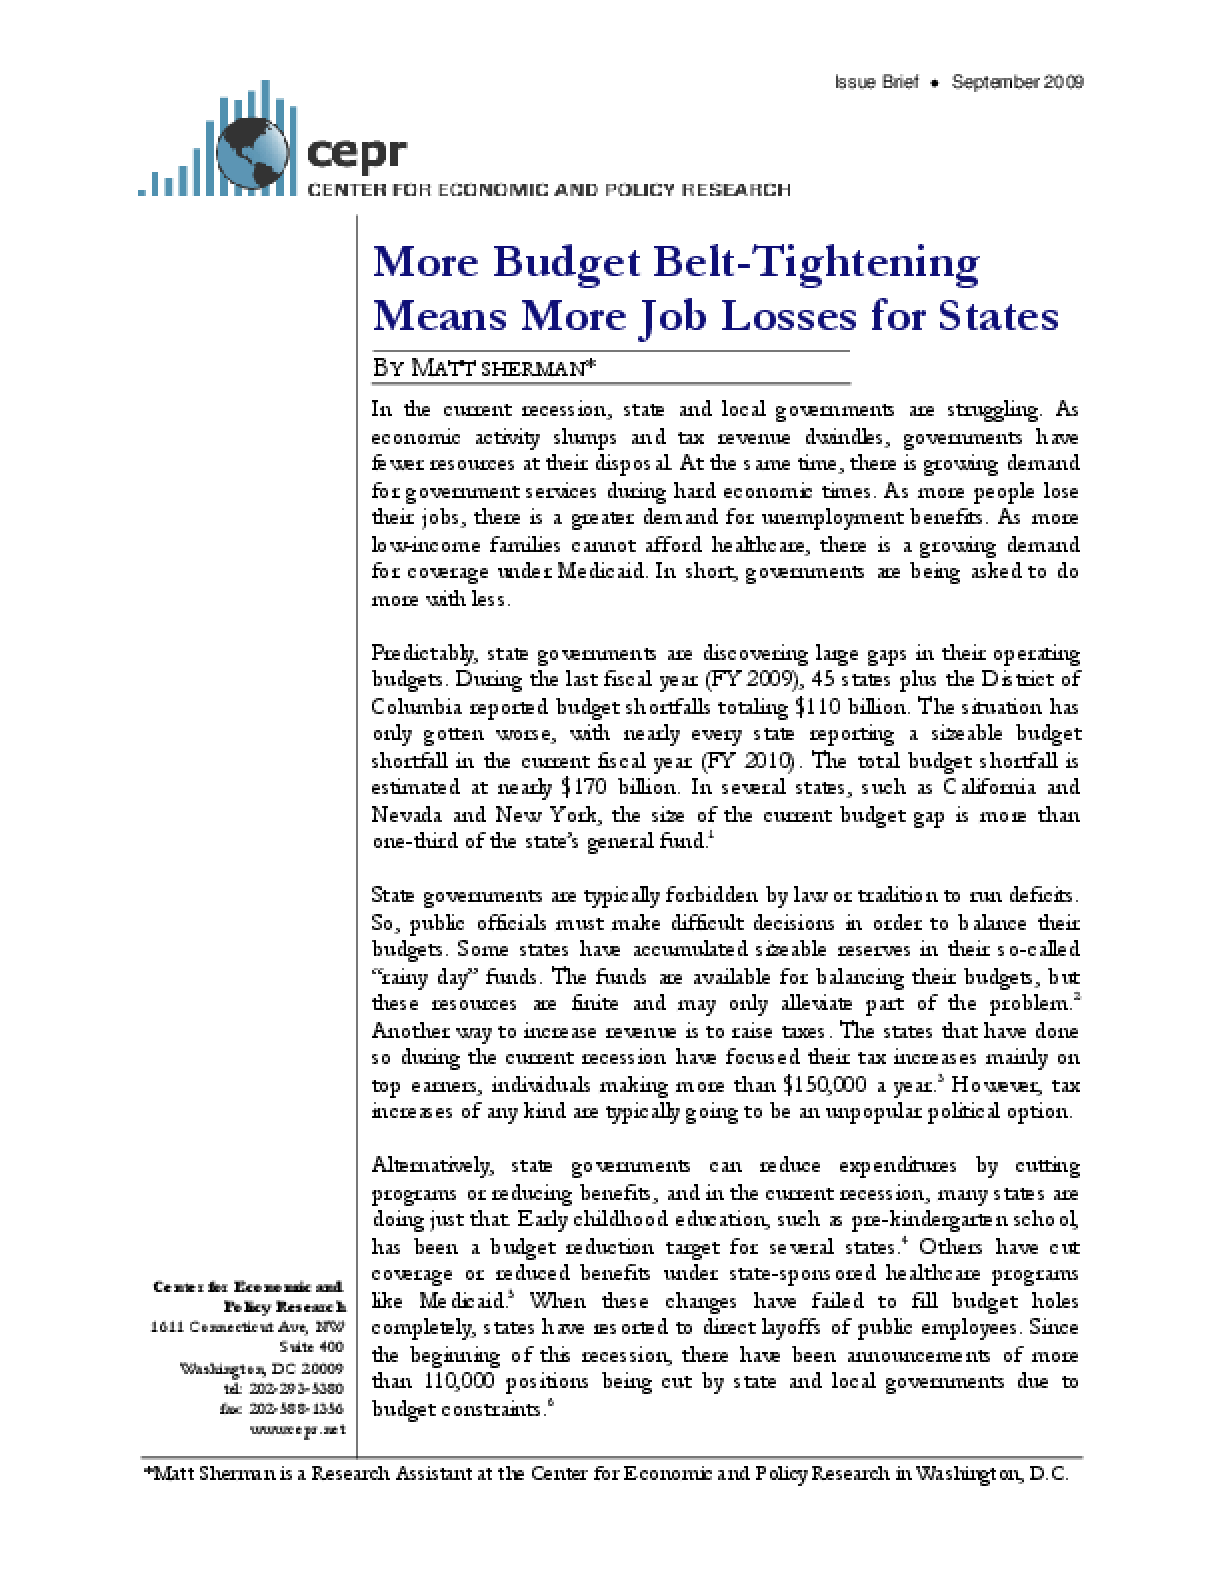 More Budget Belt-Tightening Means More Job Losses for States